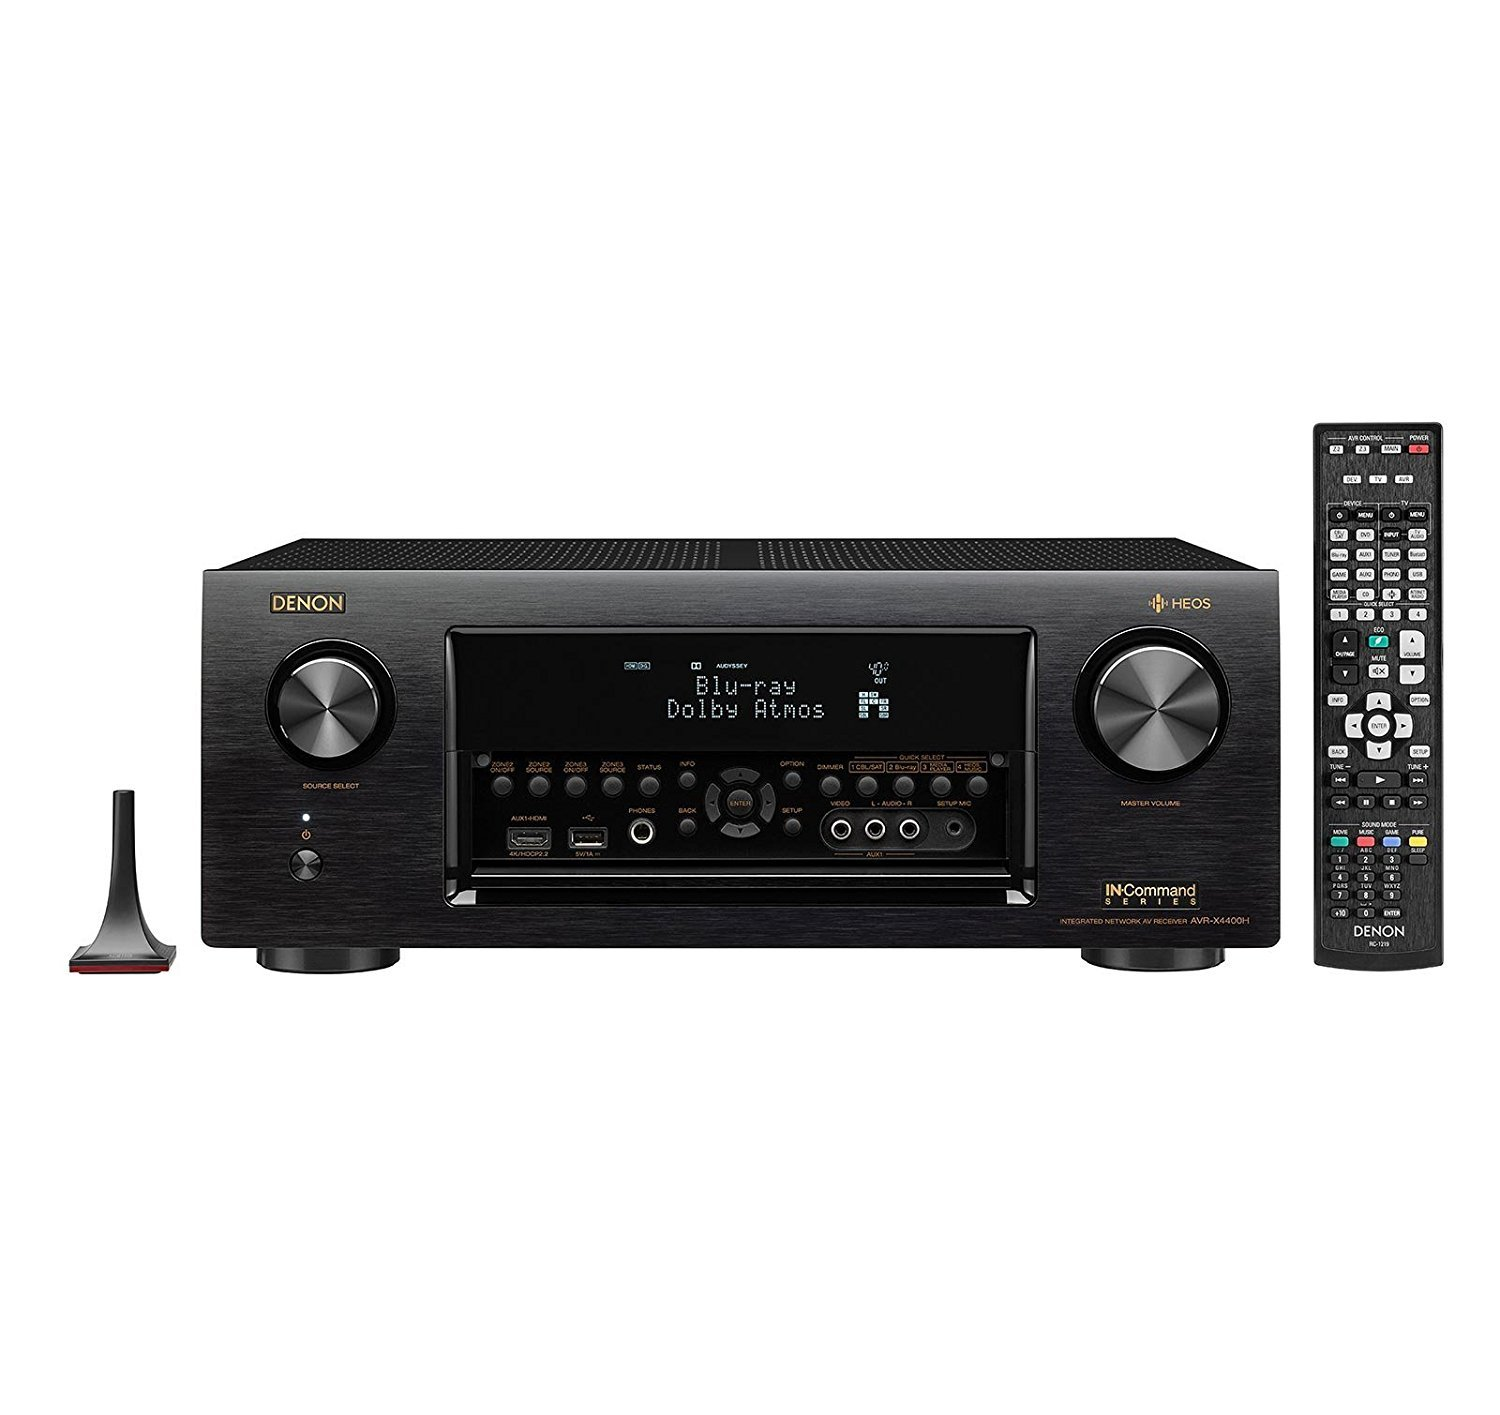 Denon AVRX4400H 9.2 Channel Full 4K Ultra HD Network AV Receiver with HEOS black (Certified Refurbished) by Denon